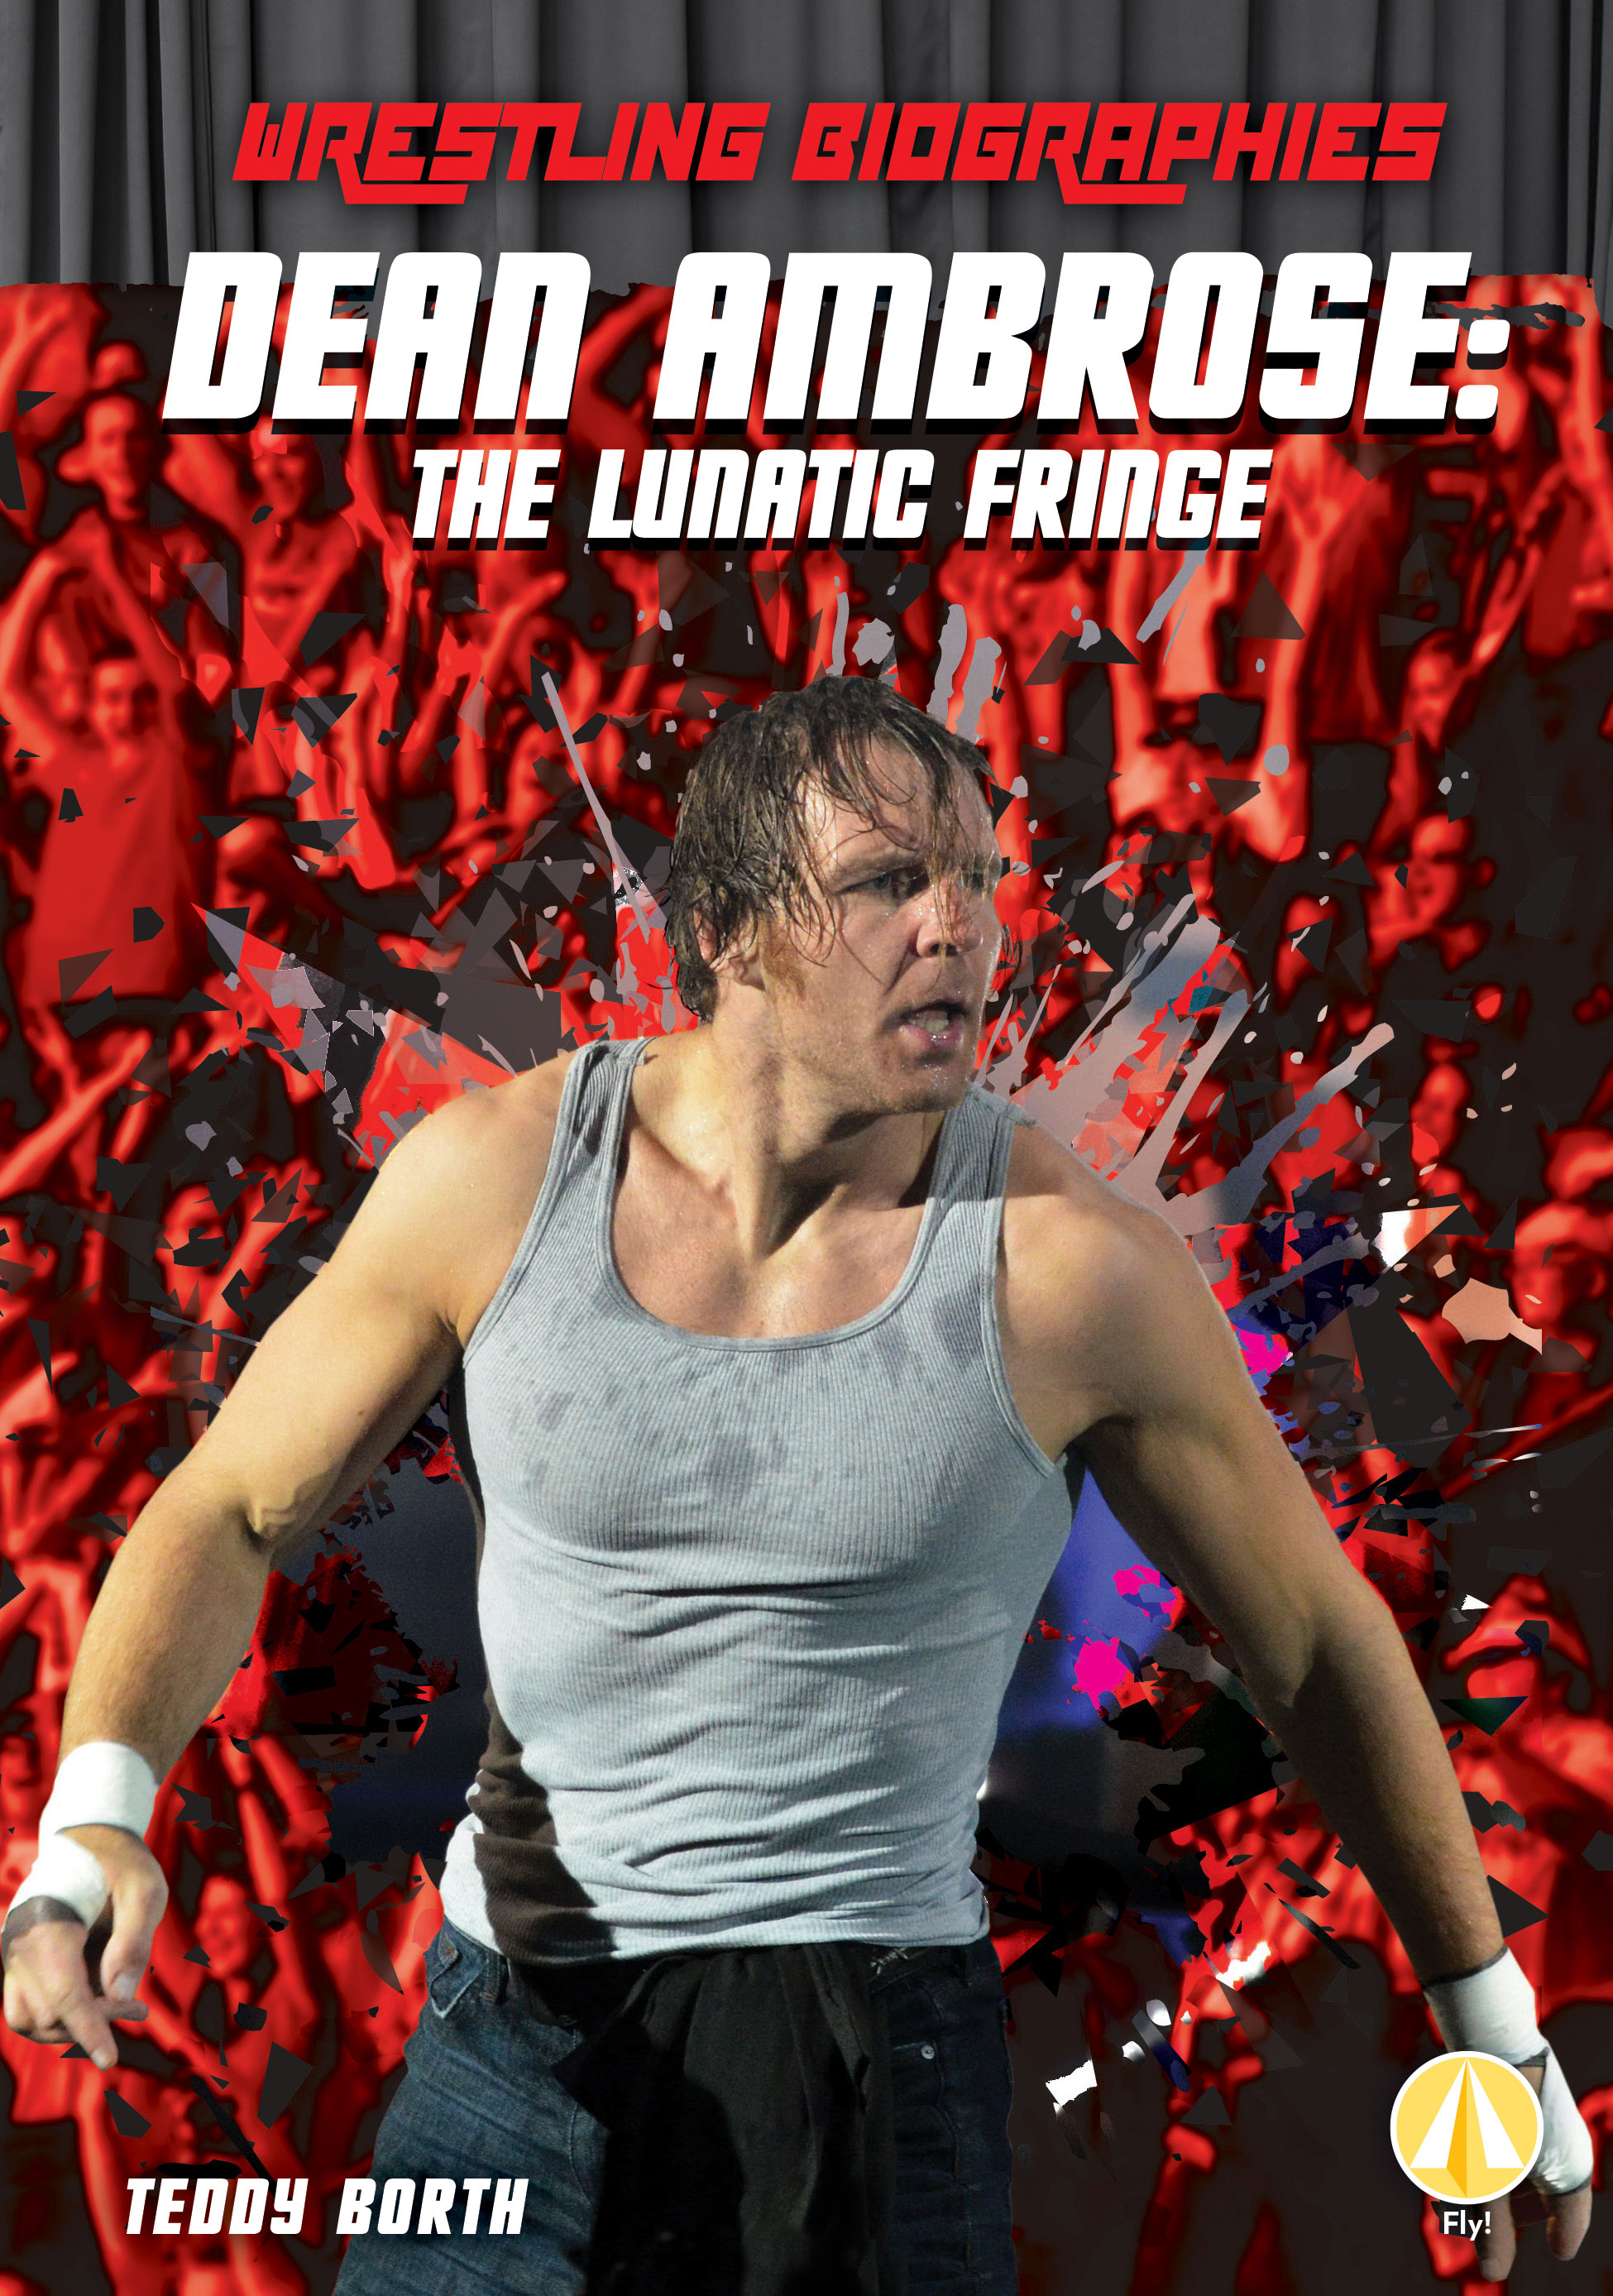 Dean Ambrose: The Lunatic Fringe